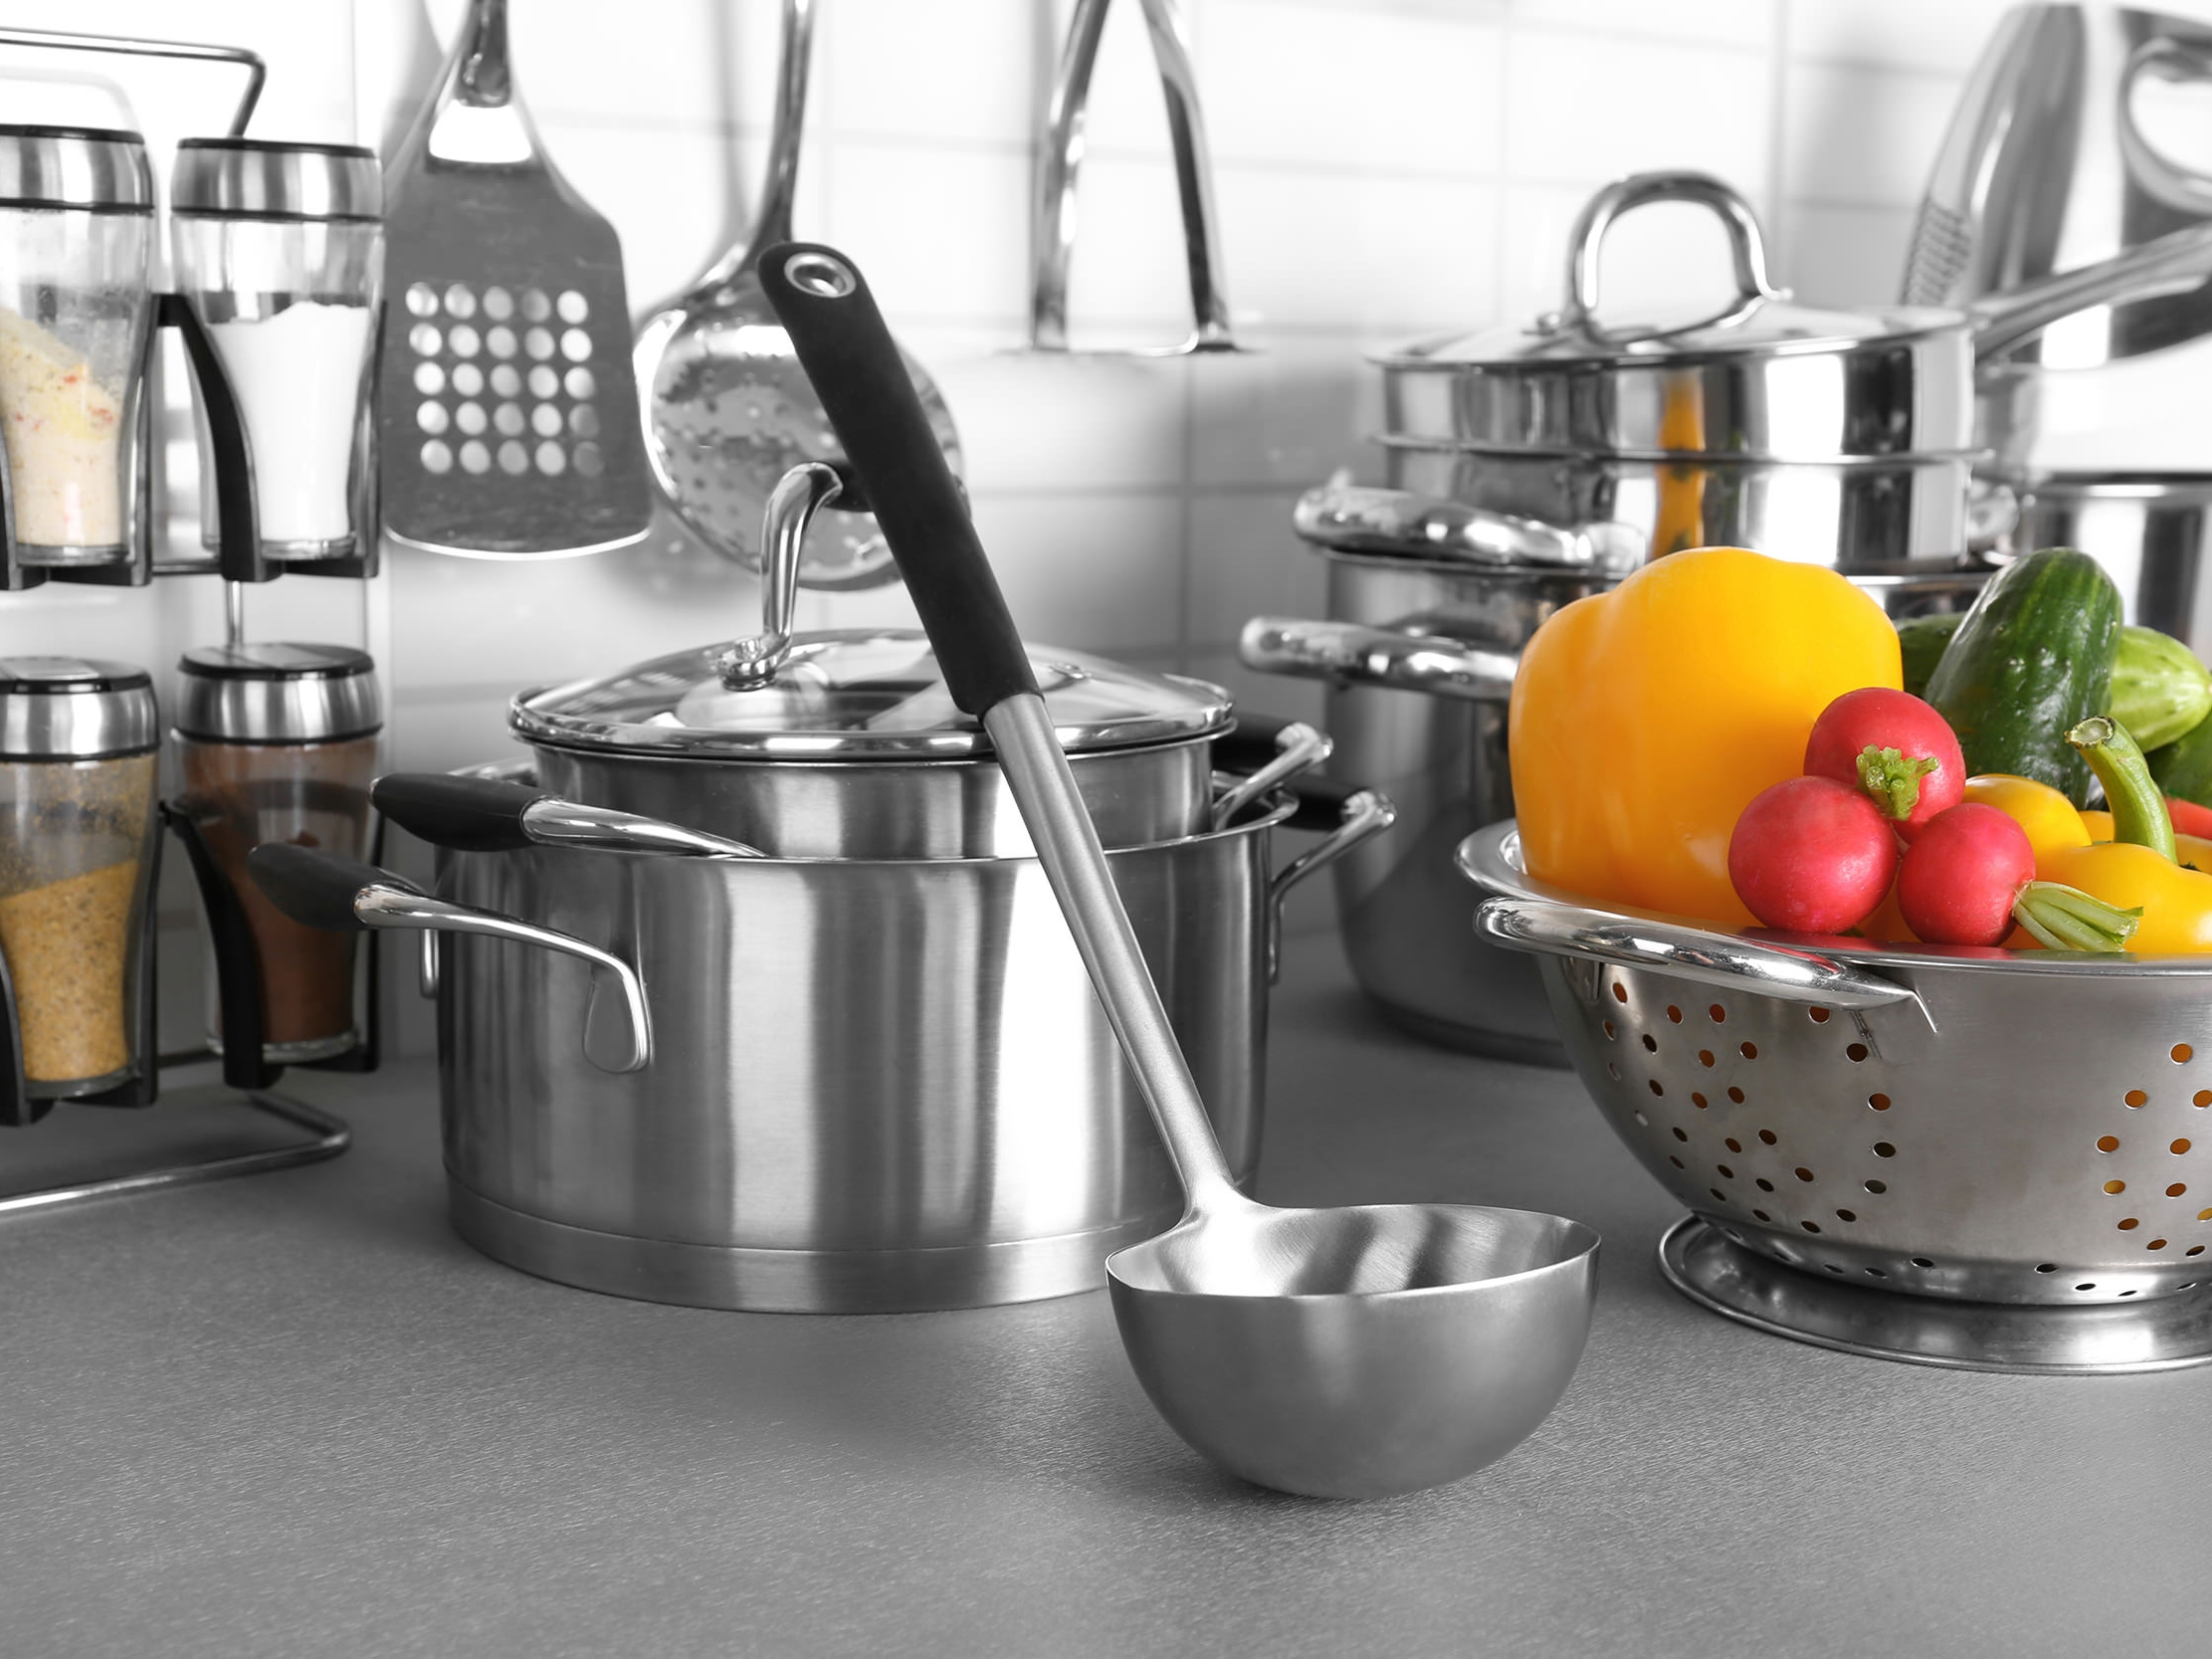 KITCHEN GADGETS - [Coming Soon]